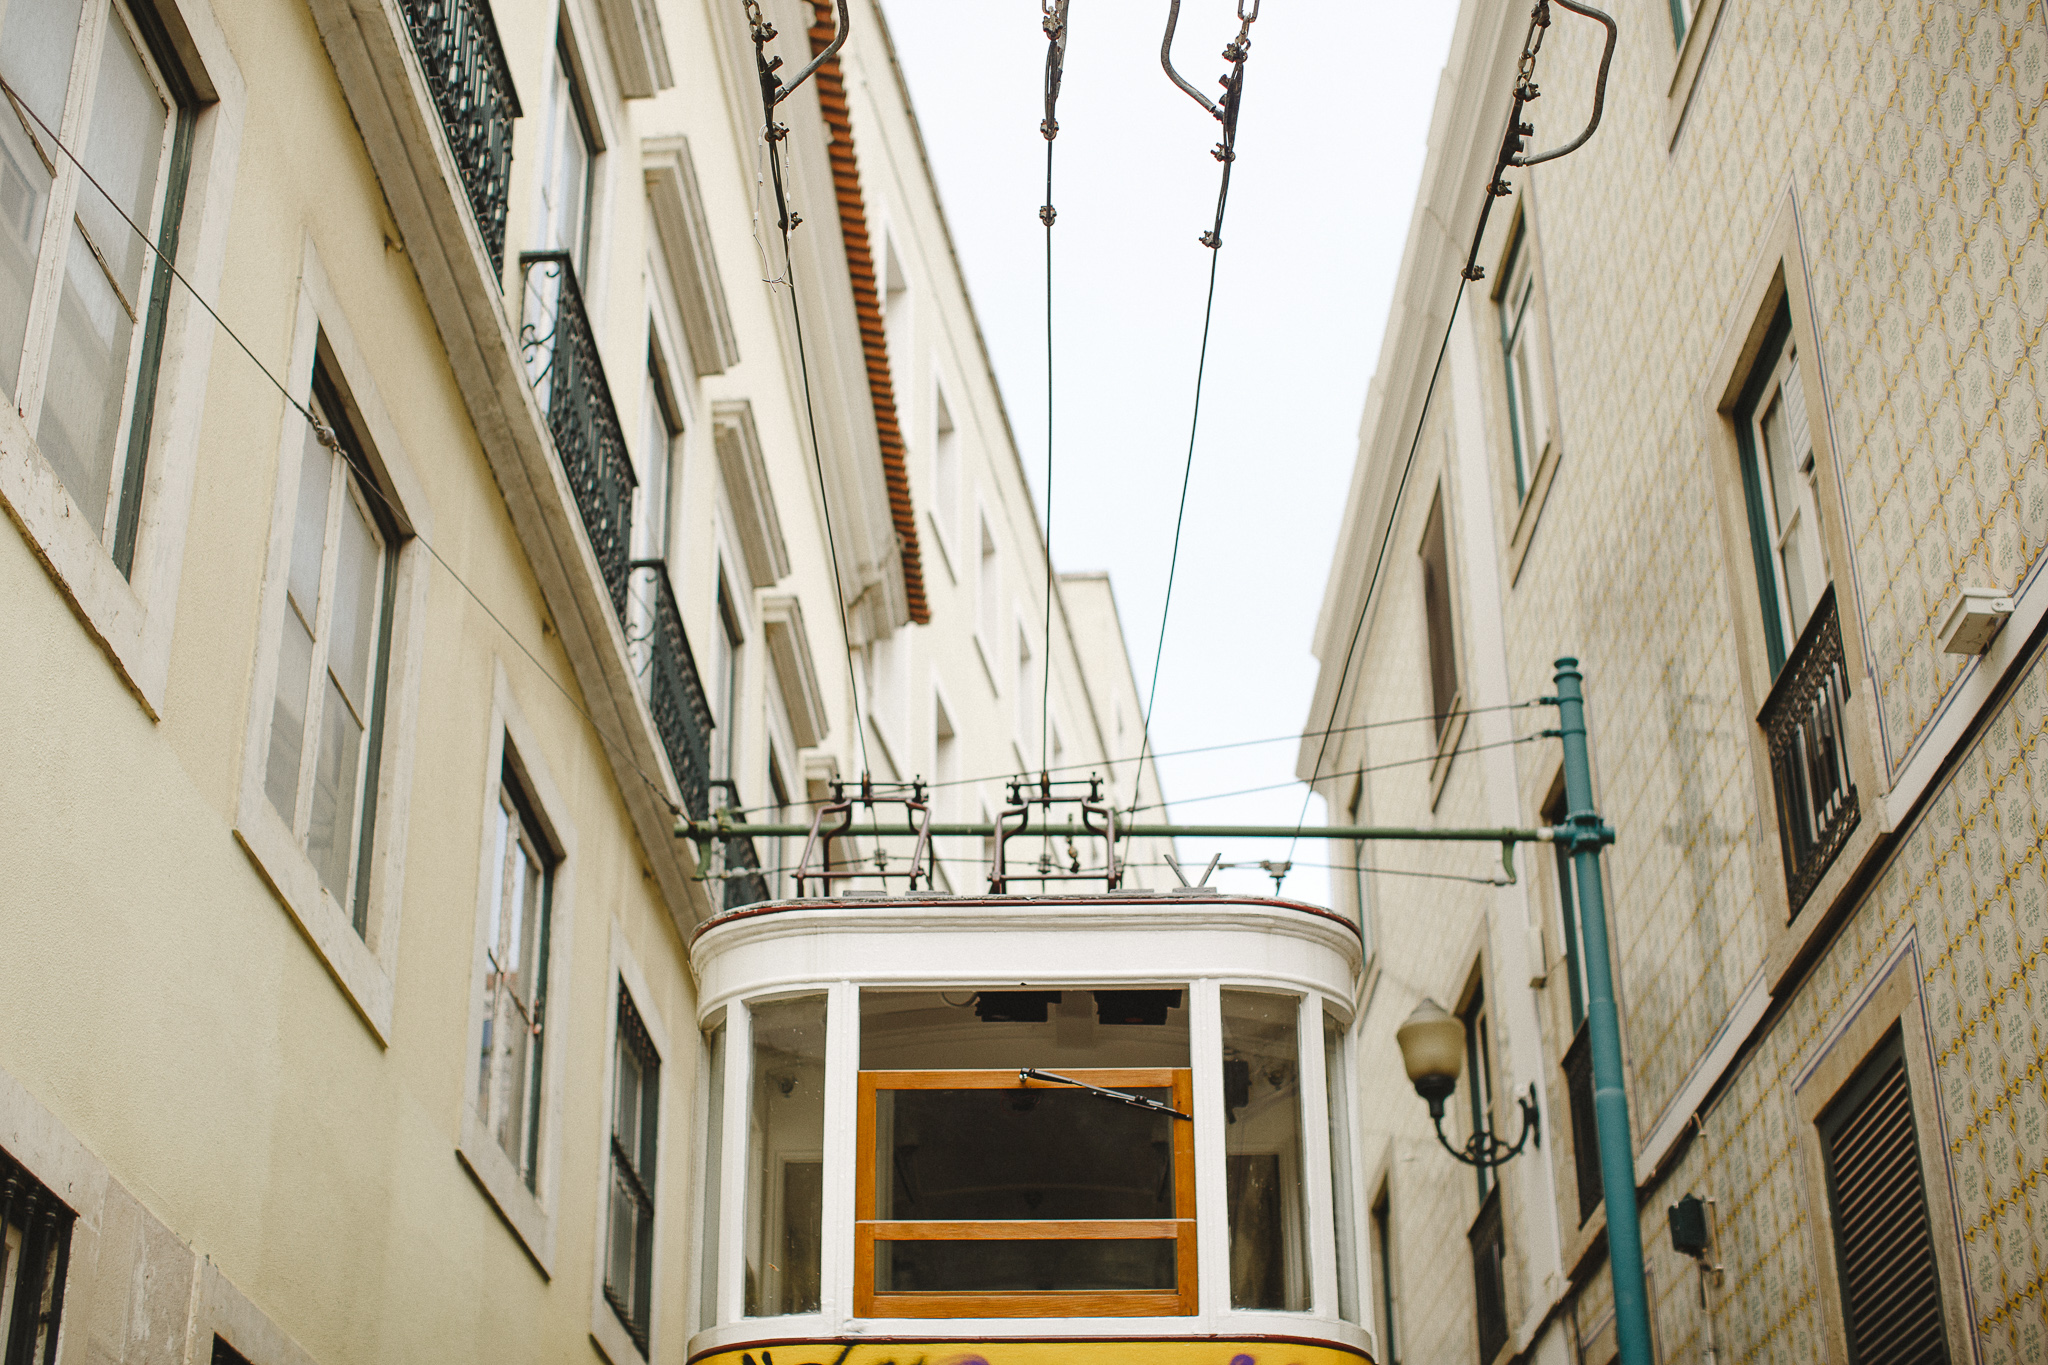 Lisbon's yellow tram in one iconic street.